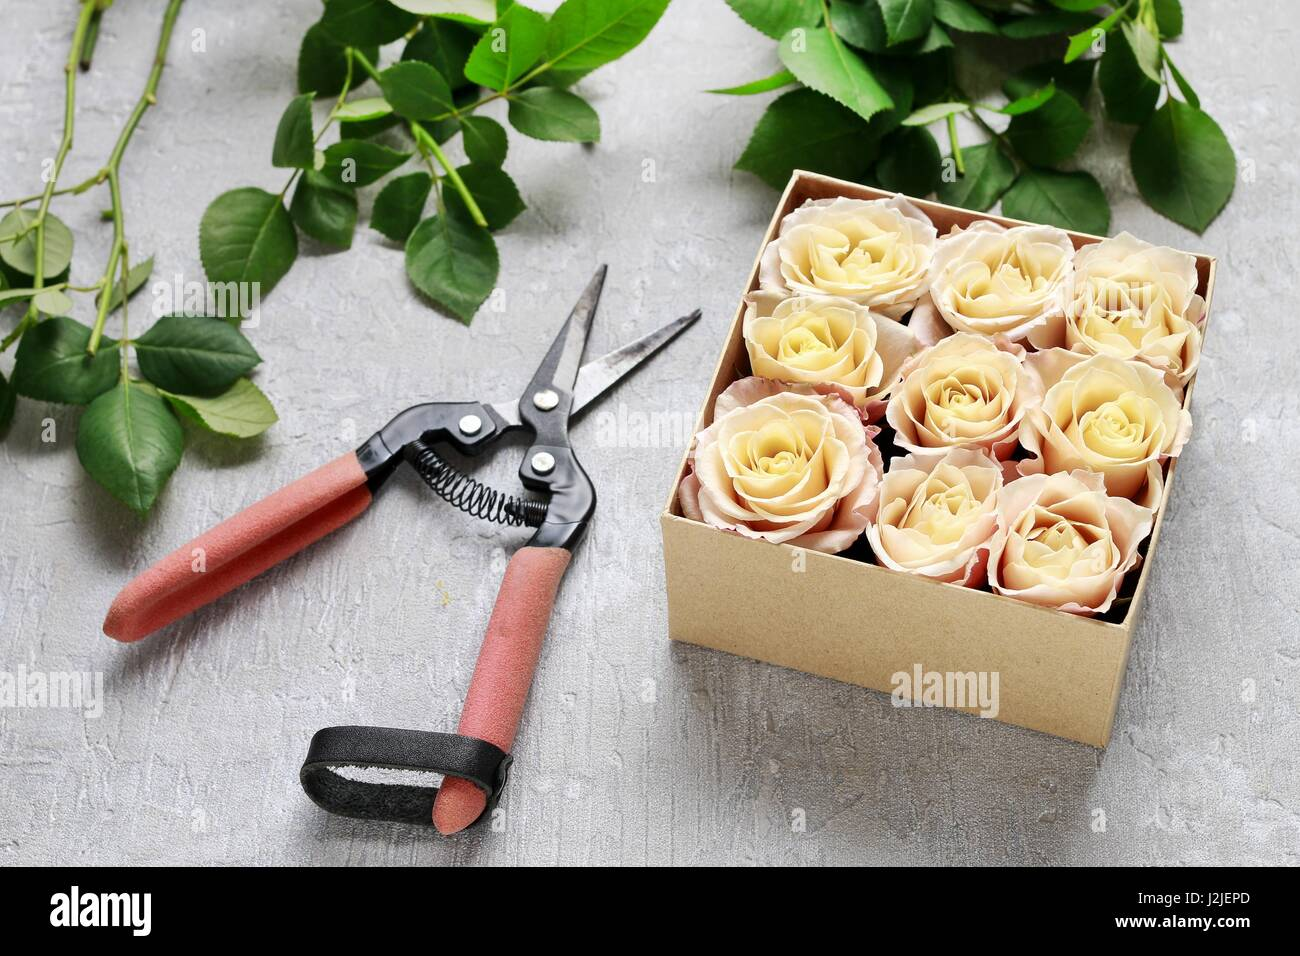 Florist Workplace How To Make Box With Flowers Step By Step Stock